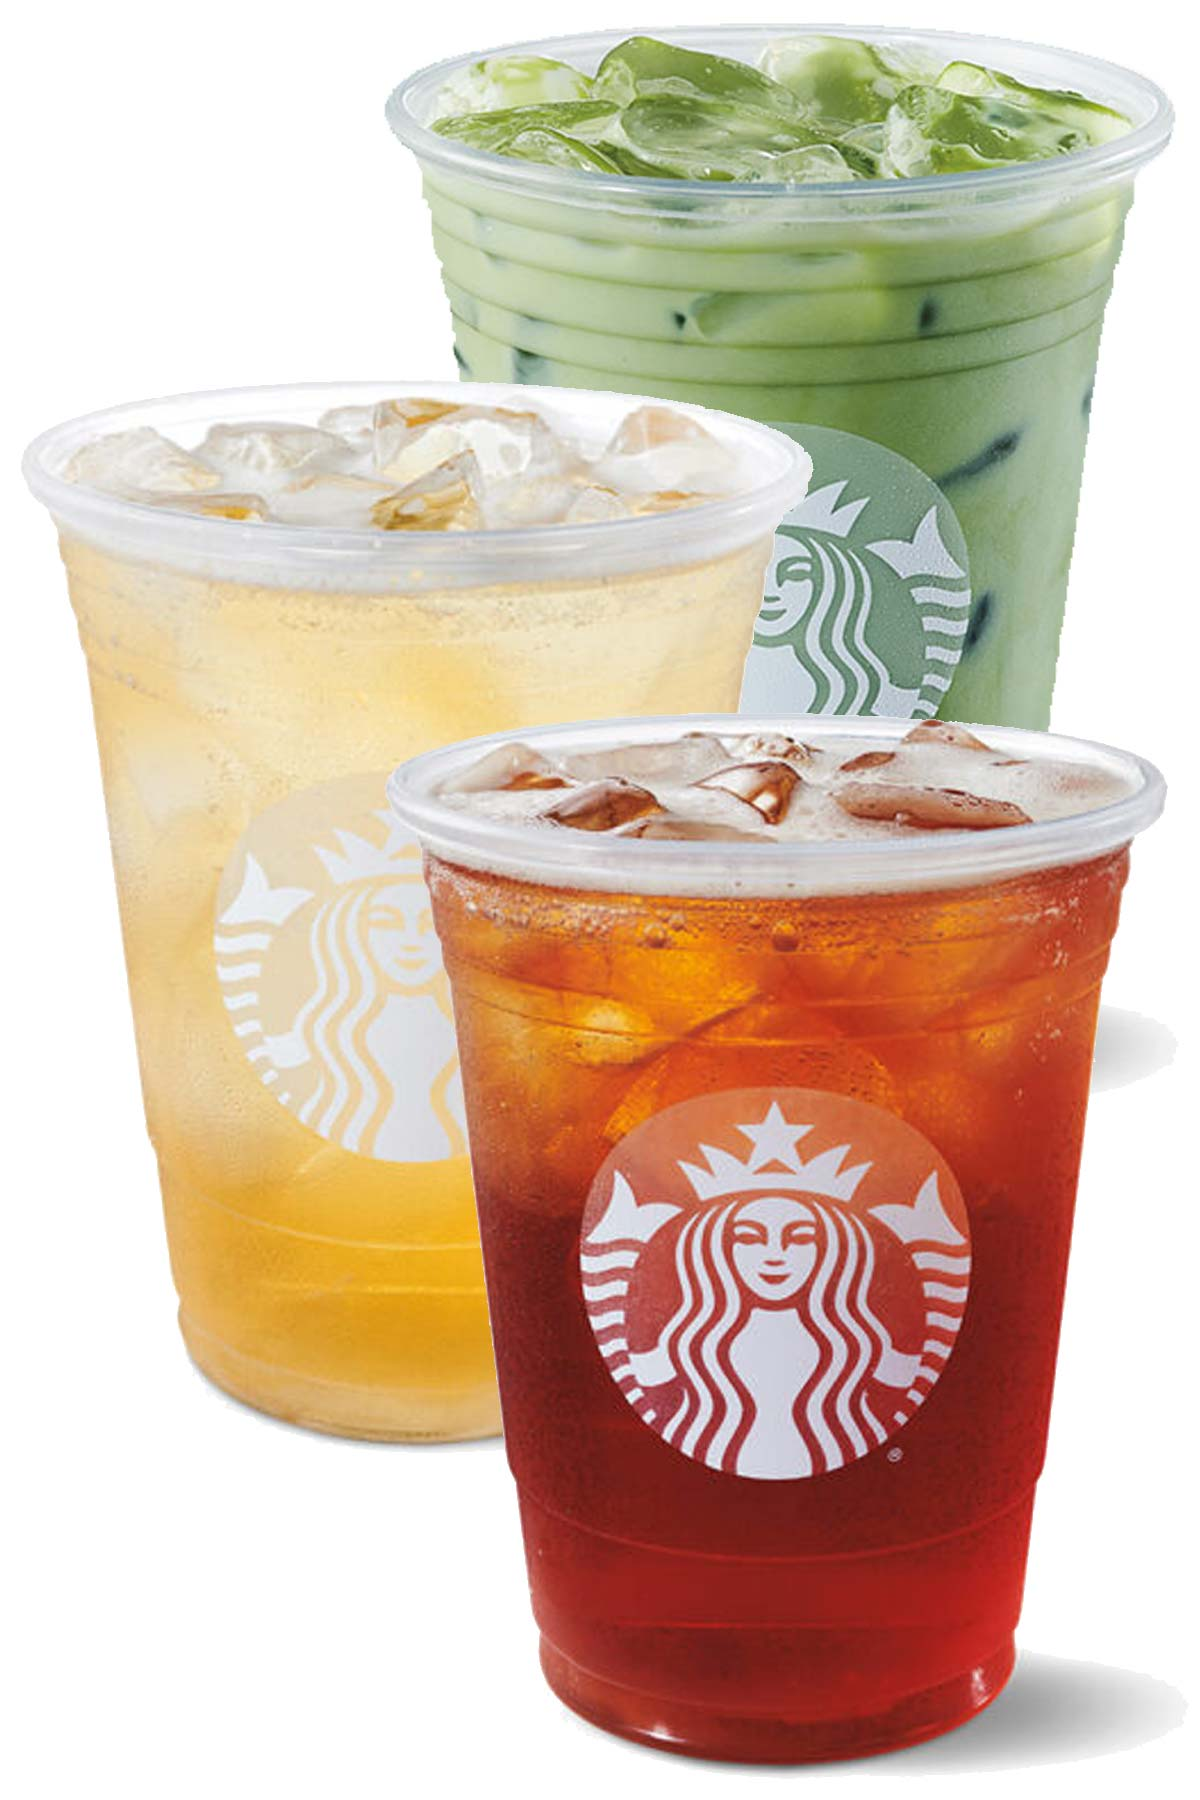 3 Starbucks cups with different iced tea drinks.